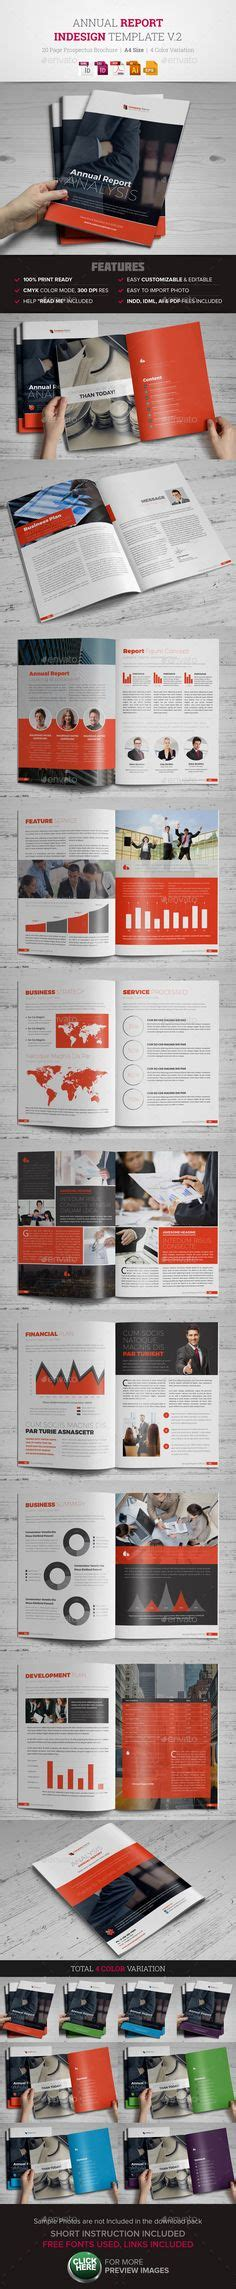 Https Graphicriver Net Item Divided Annual Report Template 13185075 Report Design Annual Report Design And Annual Reports On